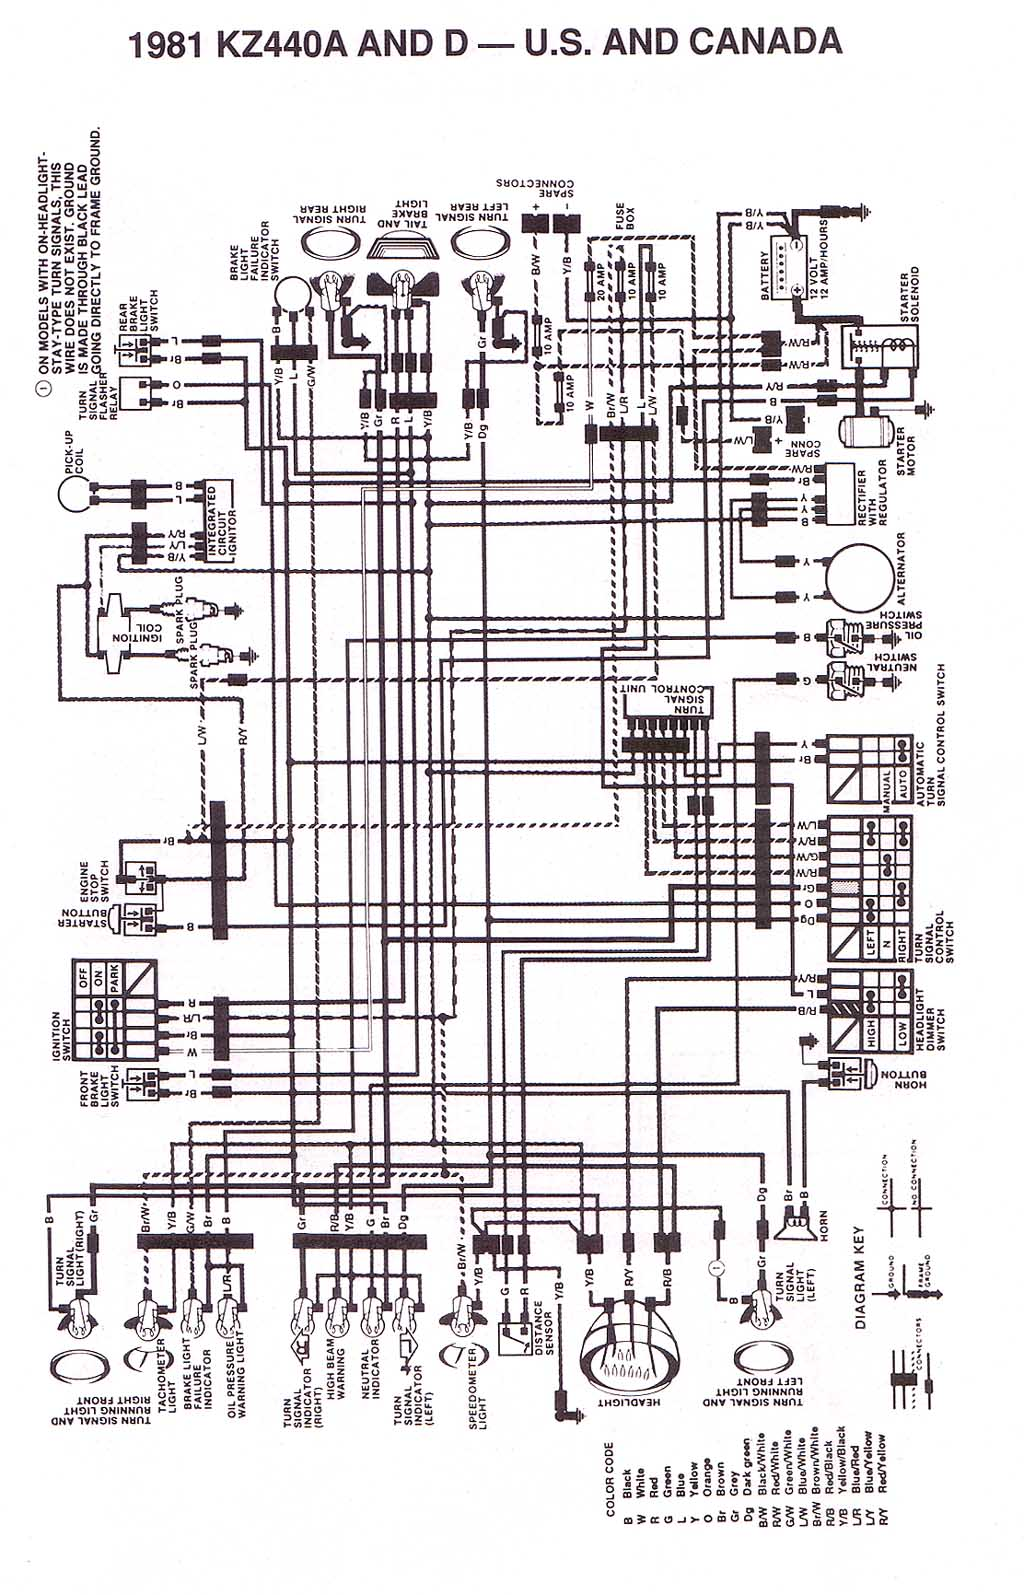 KZ440A and D wiring diagram %28US%29 1981 kawasaki ltd 440 rebuild thread page 5 barf bay area 1980 Kawasaki KZ750 Wiring-Diagram at webbmarketing.co